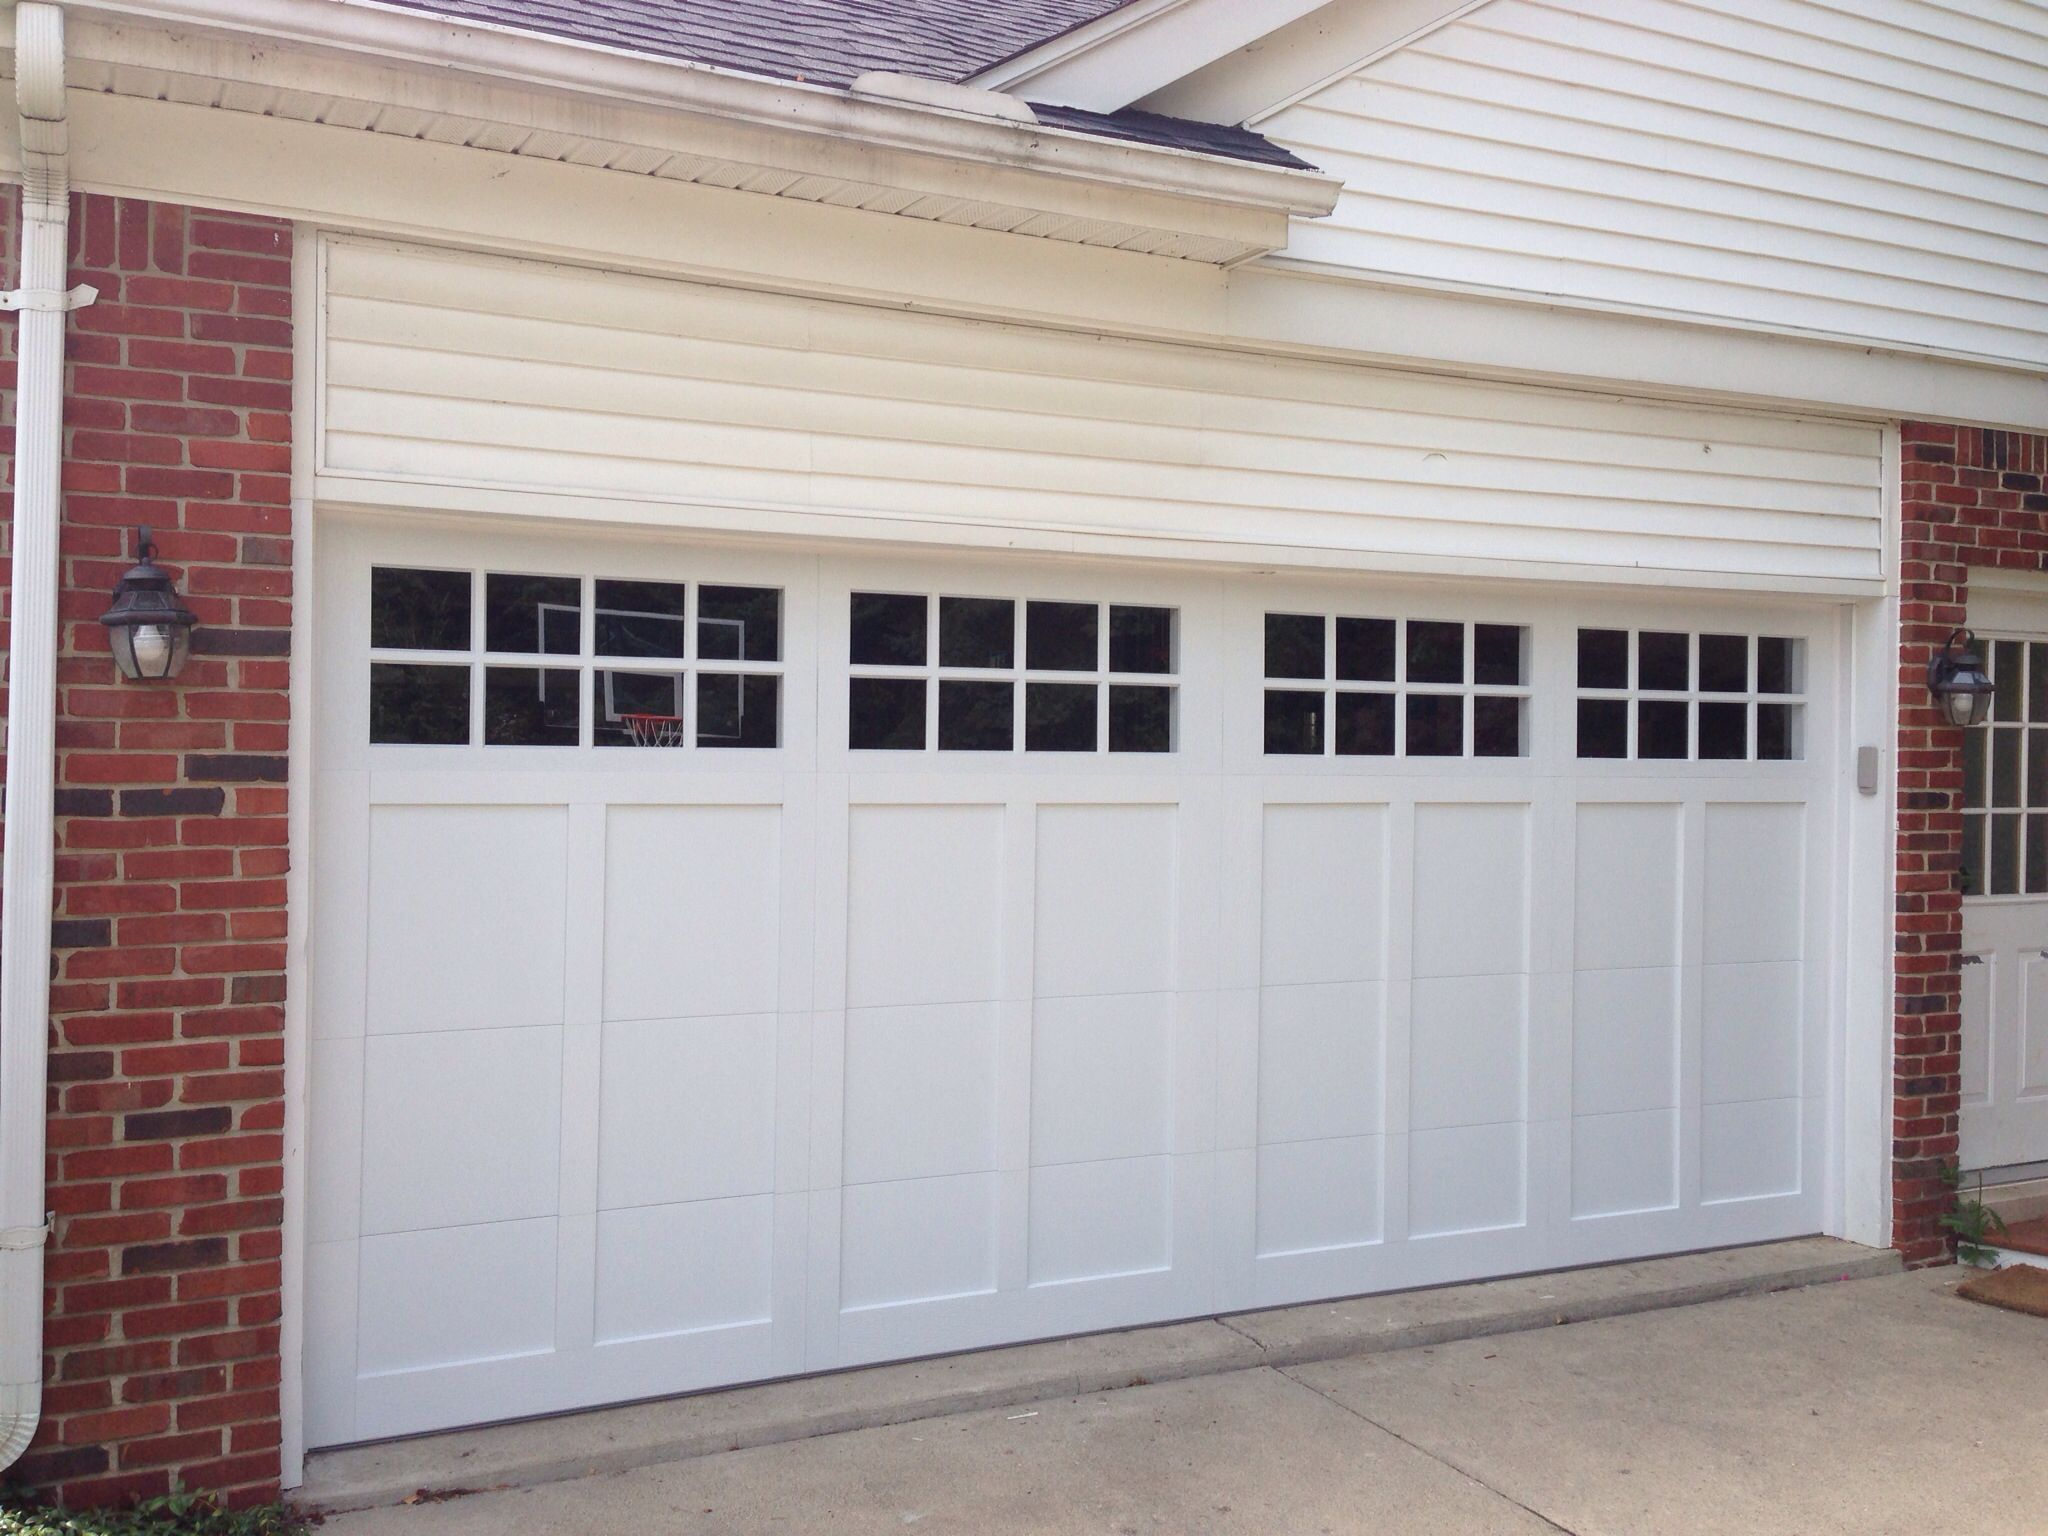 16 39 x 7 39 c h i garage door model 5330 color white for 18x8 garage door